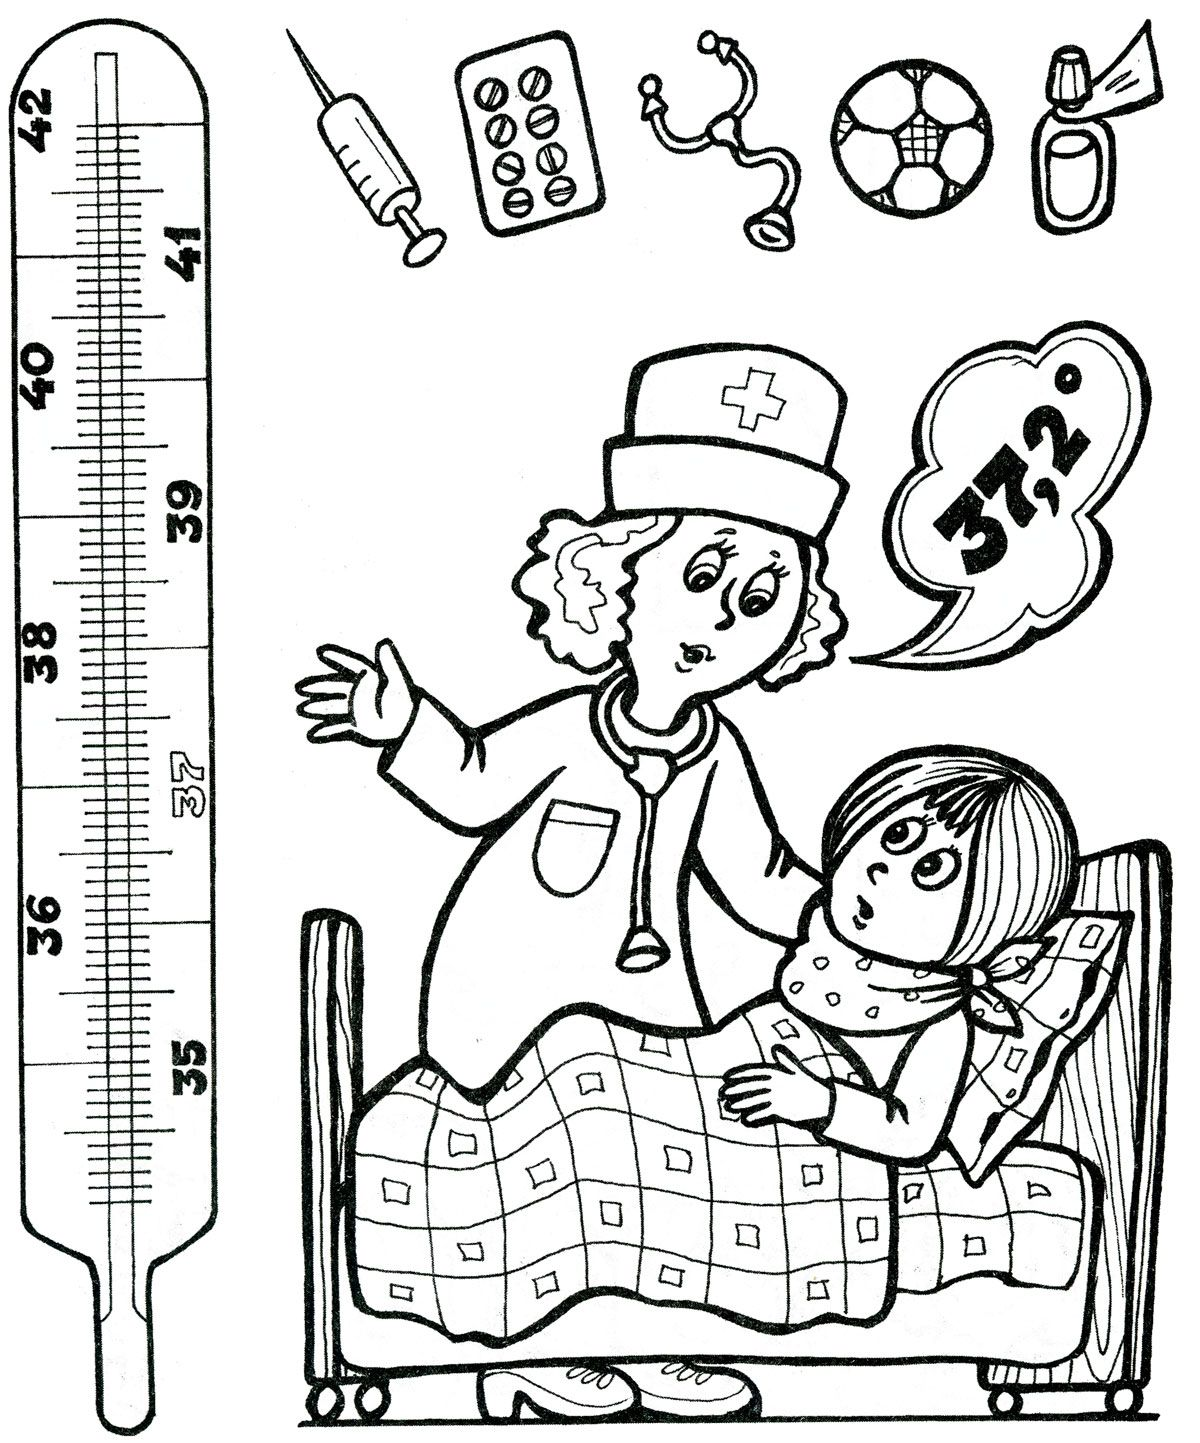 Medical Thermometer Worksheet